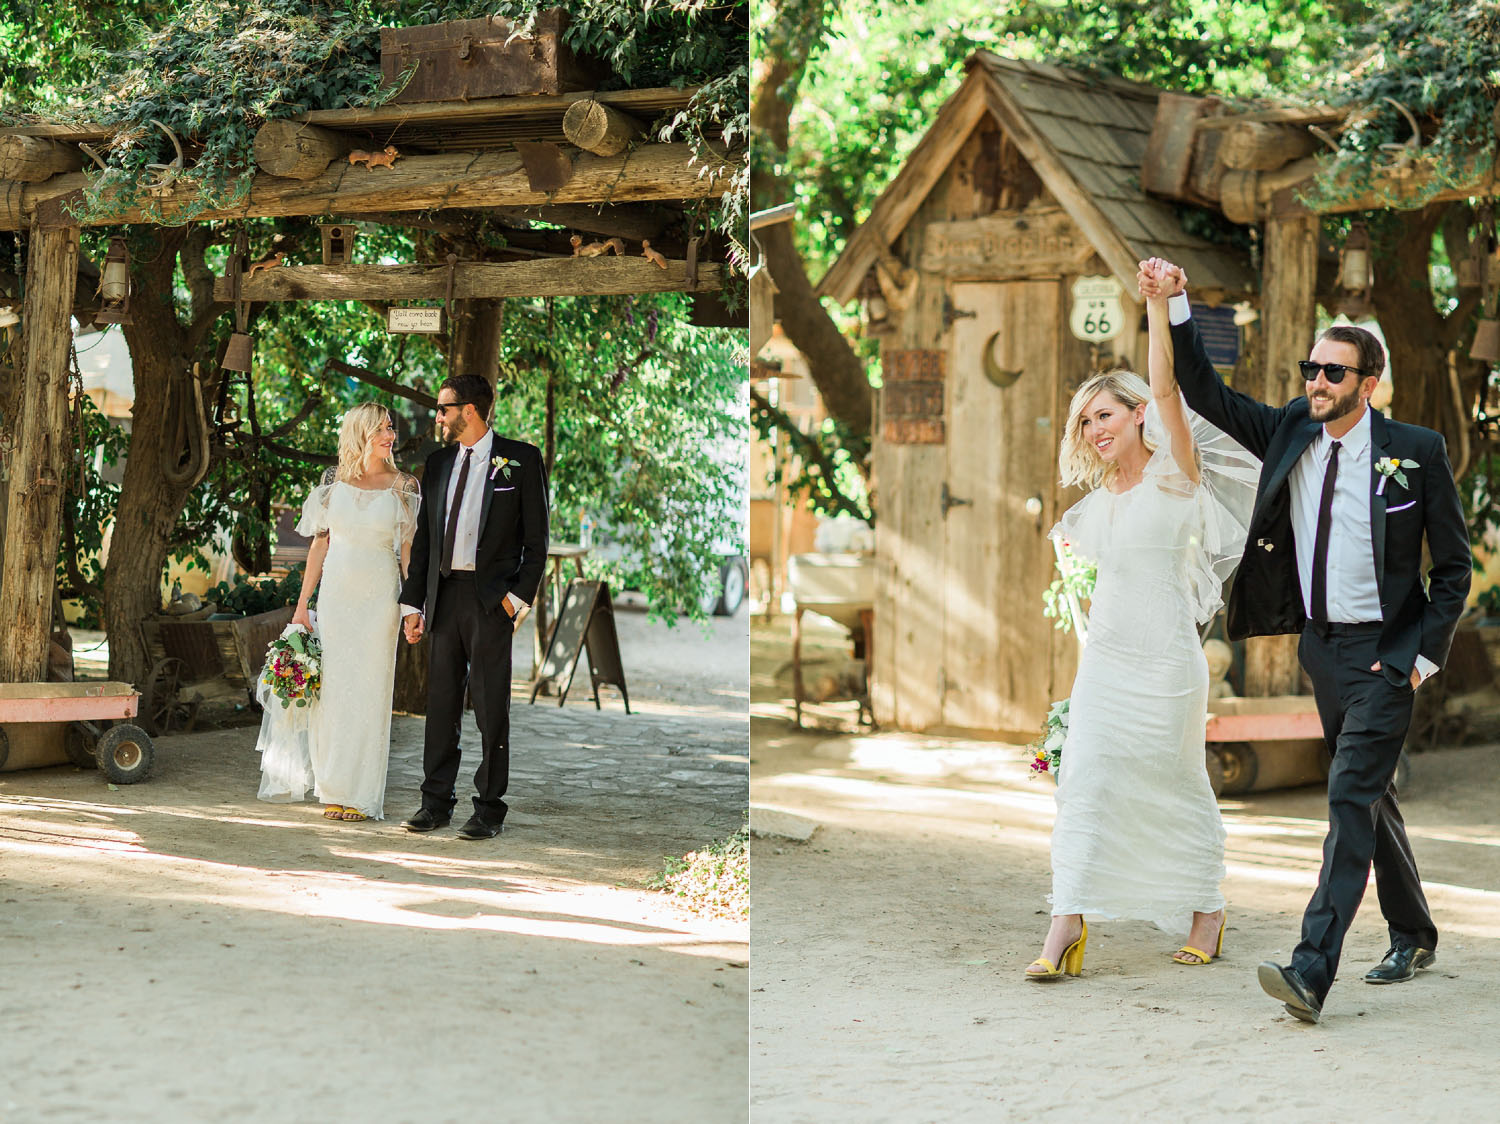 The Photege - Elegant Boho Wedding on Suburu Farm in Bakersfield California- Cassie and Darin Buoni-3045